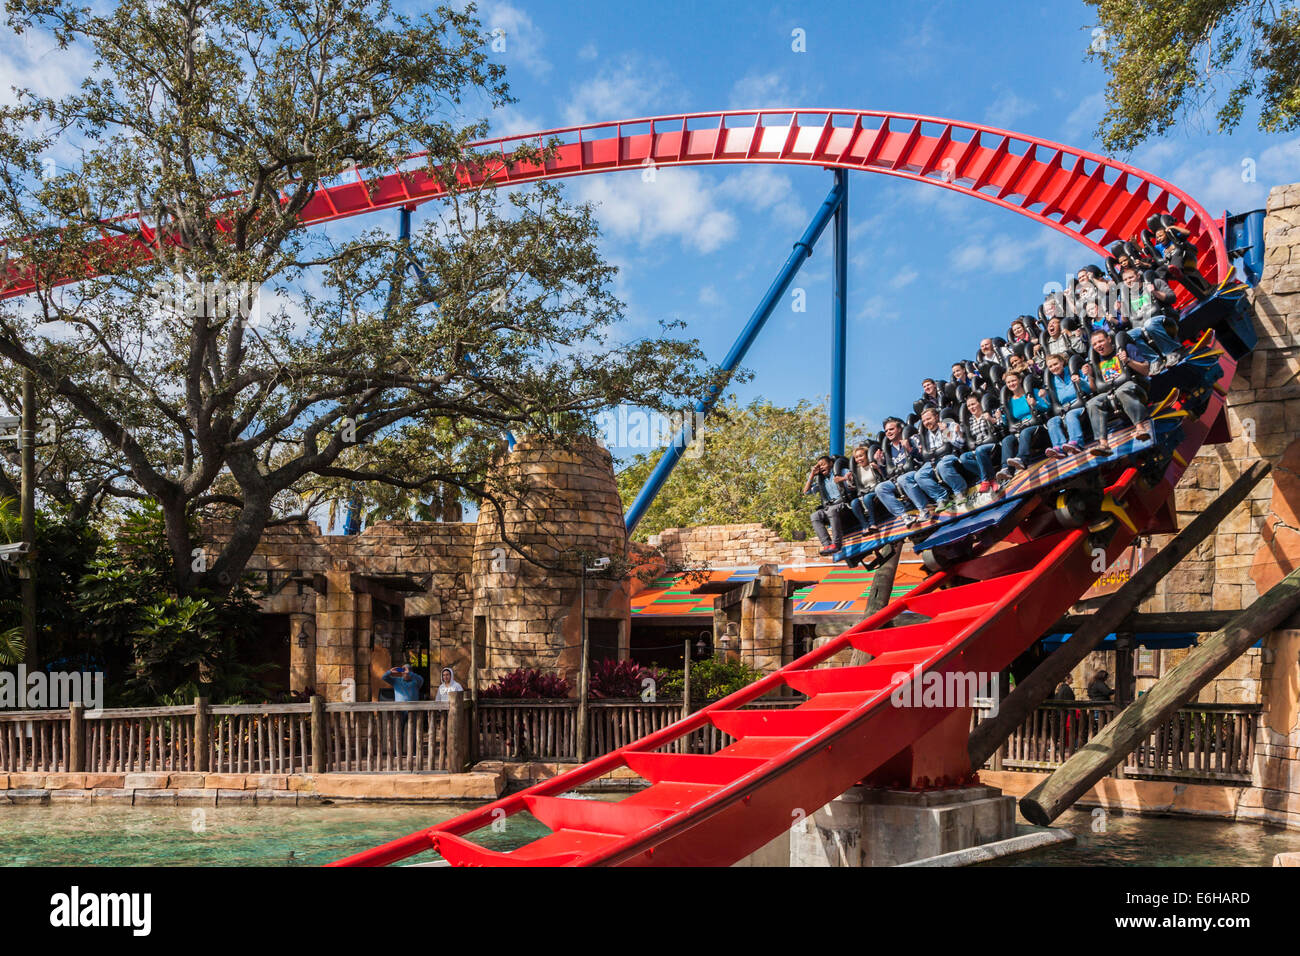 Park Guests Ride The Sheikra Roller Coaster At Busch Gardens Theme Stock Photo Royalty Free